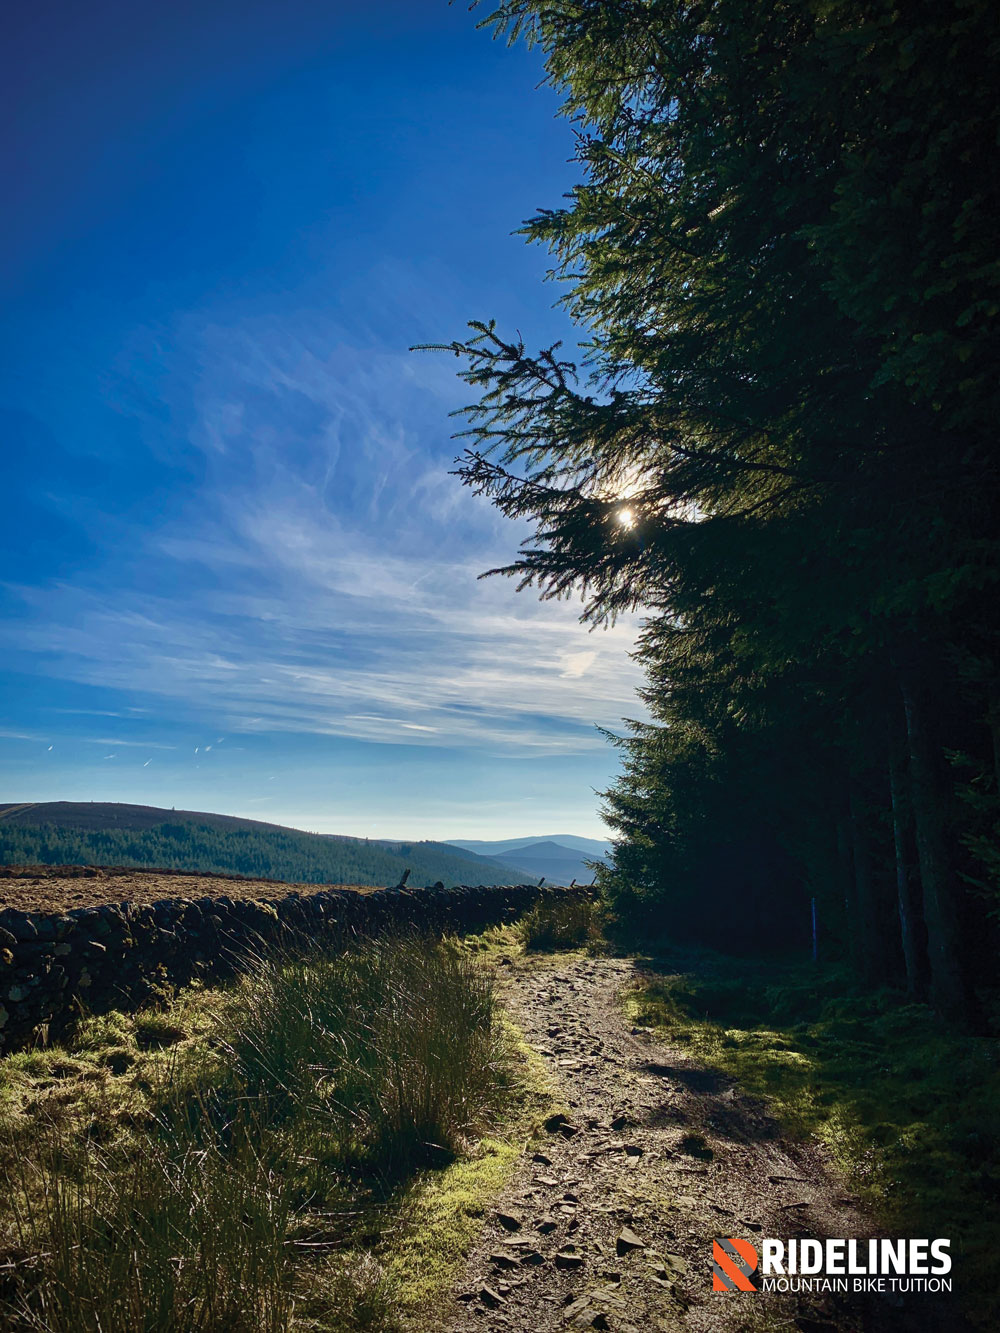 Hush Hush. Glentress has many secrets off the beaten track!